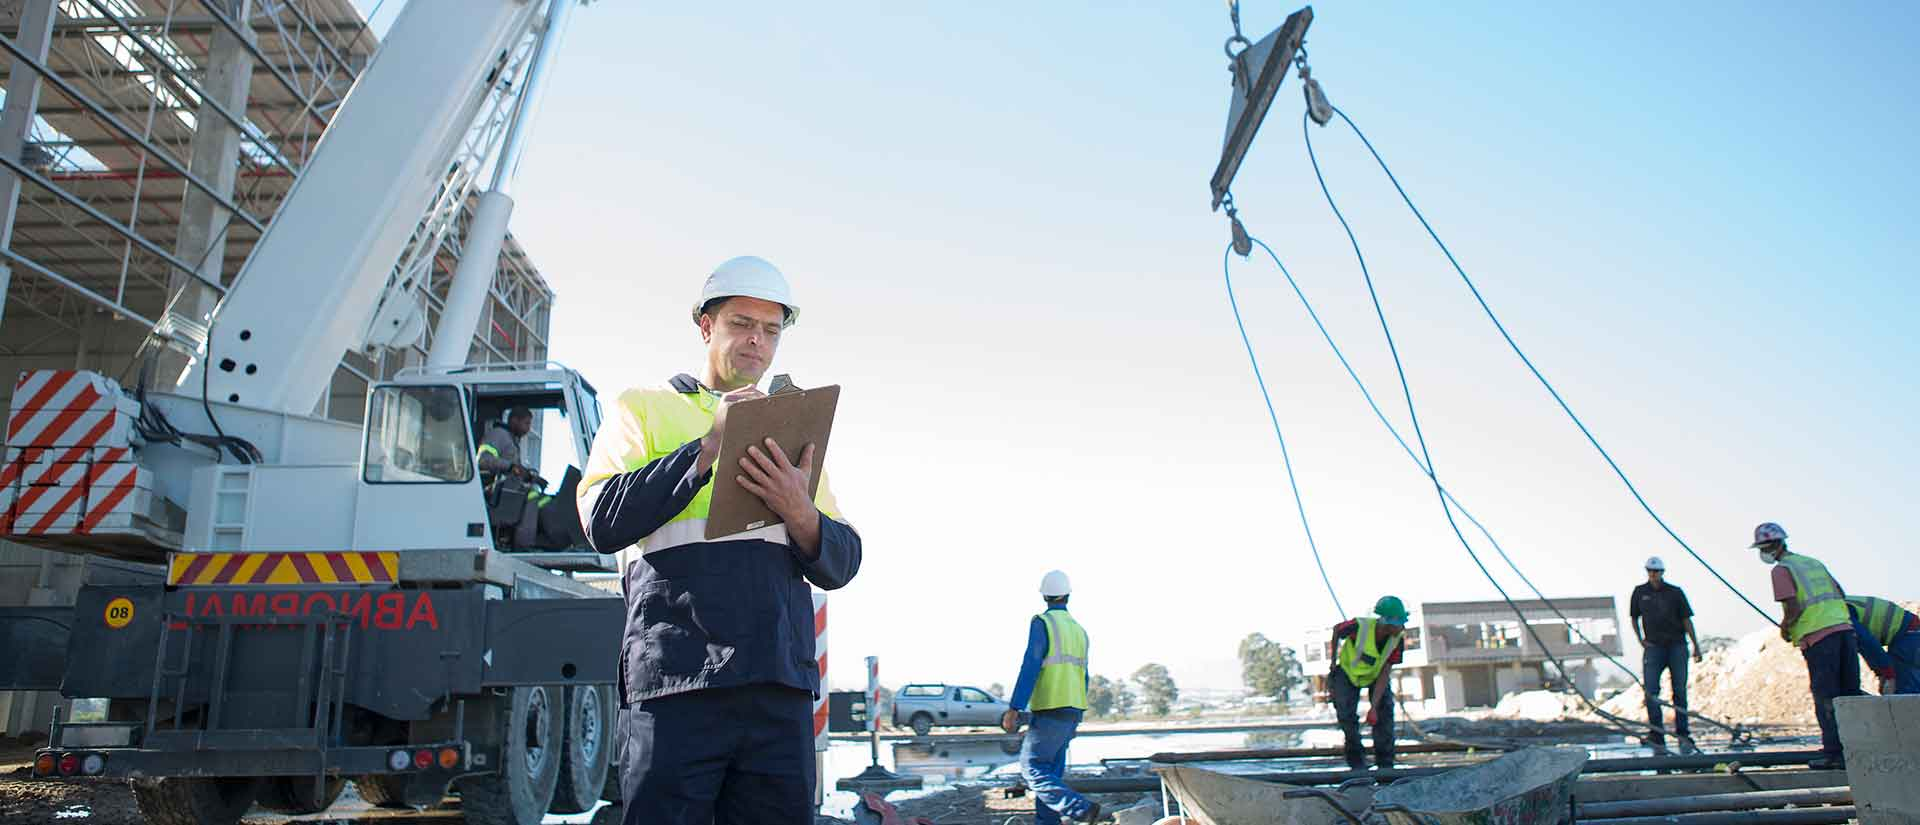 Site manager with clipboard on construction site (Photo: Zero Creatives / GettyImages)